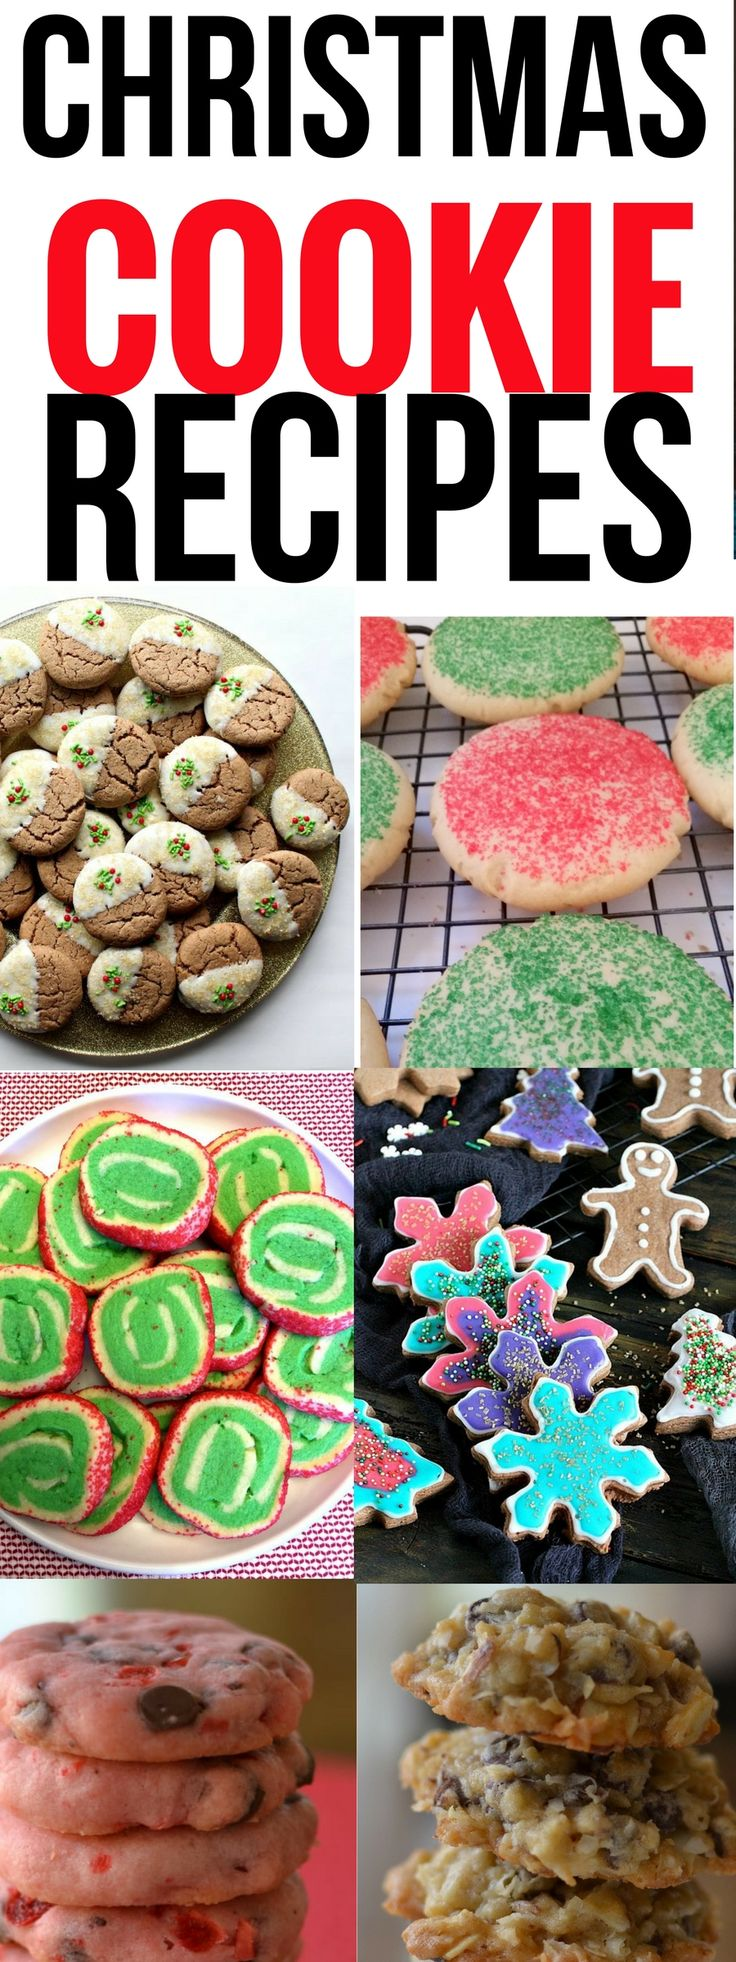 These 10 tasty Christams dinner recipes are THE BEST! I'm so glad I found these dinner recipes, now my family and I can enjoy our Christmas dinner! Pinning this for sure! #christmascookies